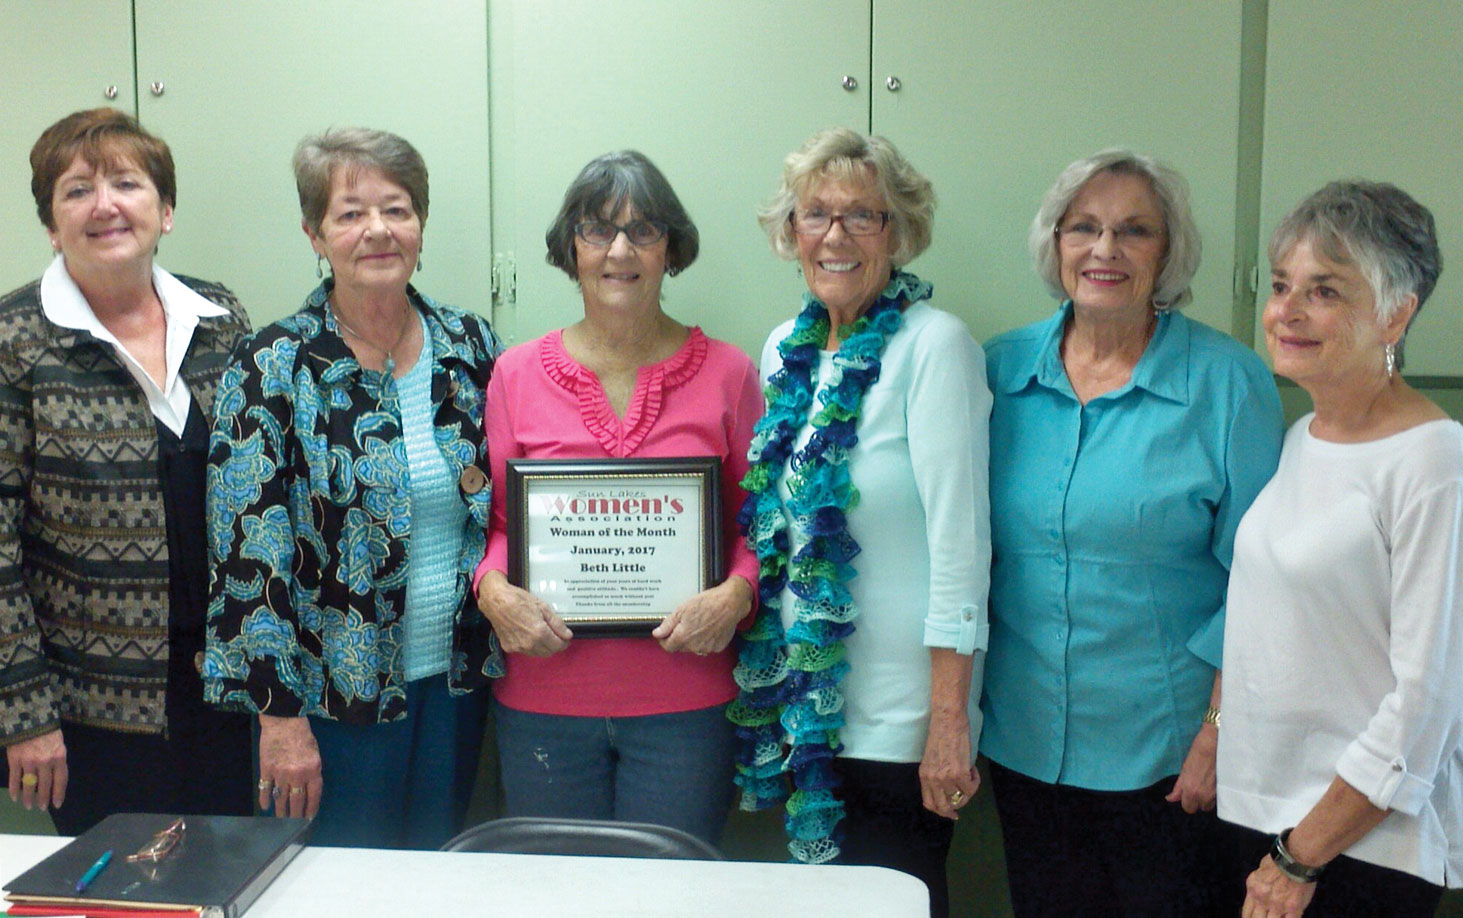 The Sun Lakes new management team and our first ever Woman of the Month winner Beth Little. From left: Judy Caniglia, Sandy Bealmear, Beth Little, Marge Shipe, Pat Vachon and Sonja Diemert